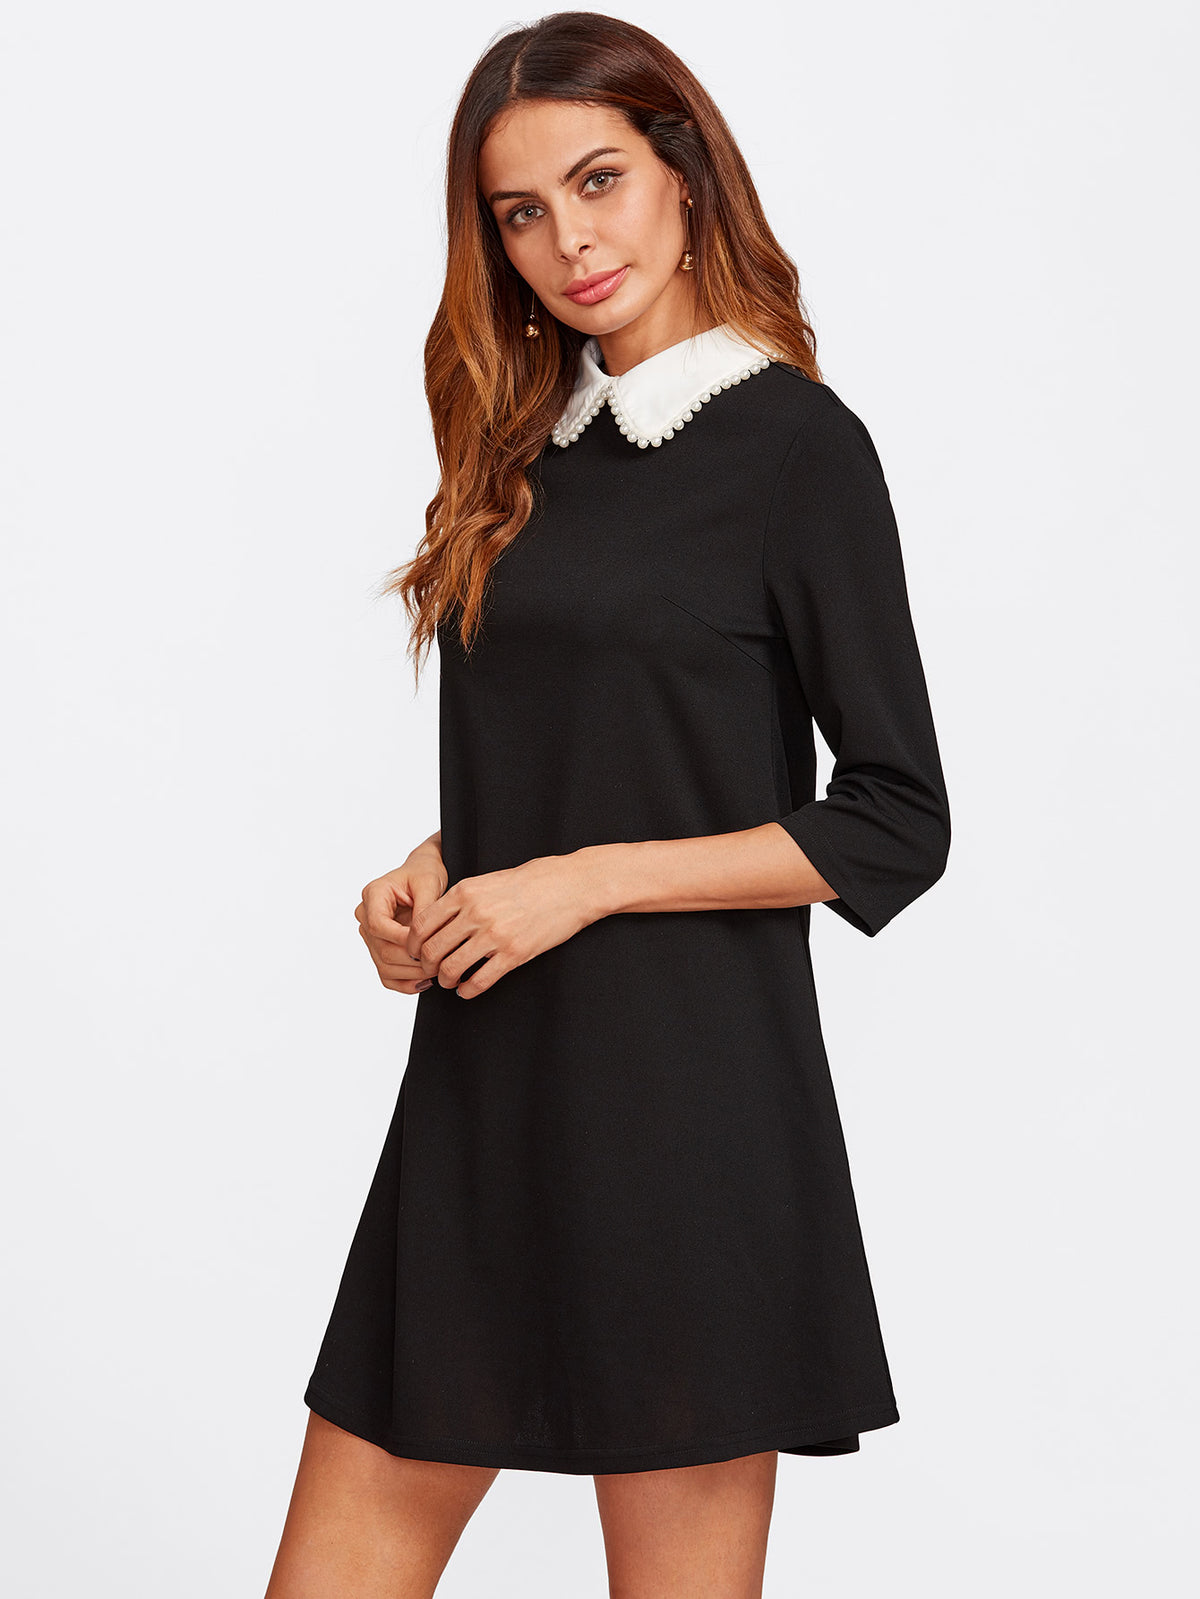 Pearl Beaded Contrast Collar Keyhole Back Dress